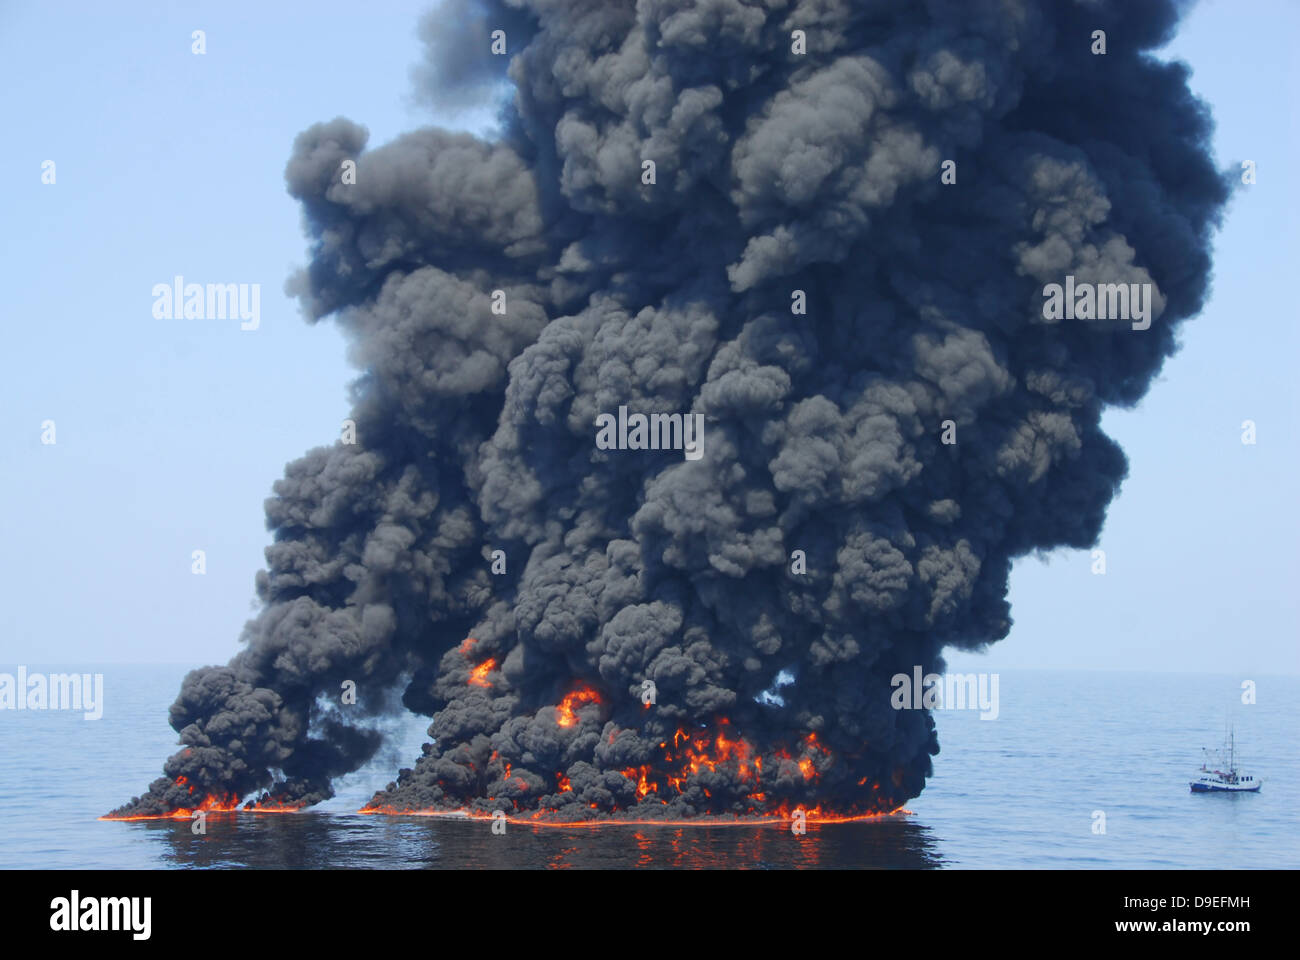 Dark clouds of smoke and fire emerge as oil burns during a controlled fire in the Gulf of Mexico. - Stock Image